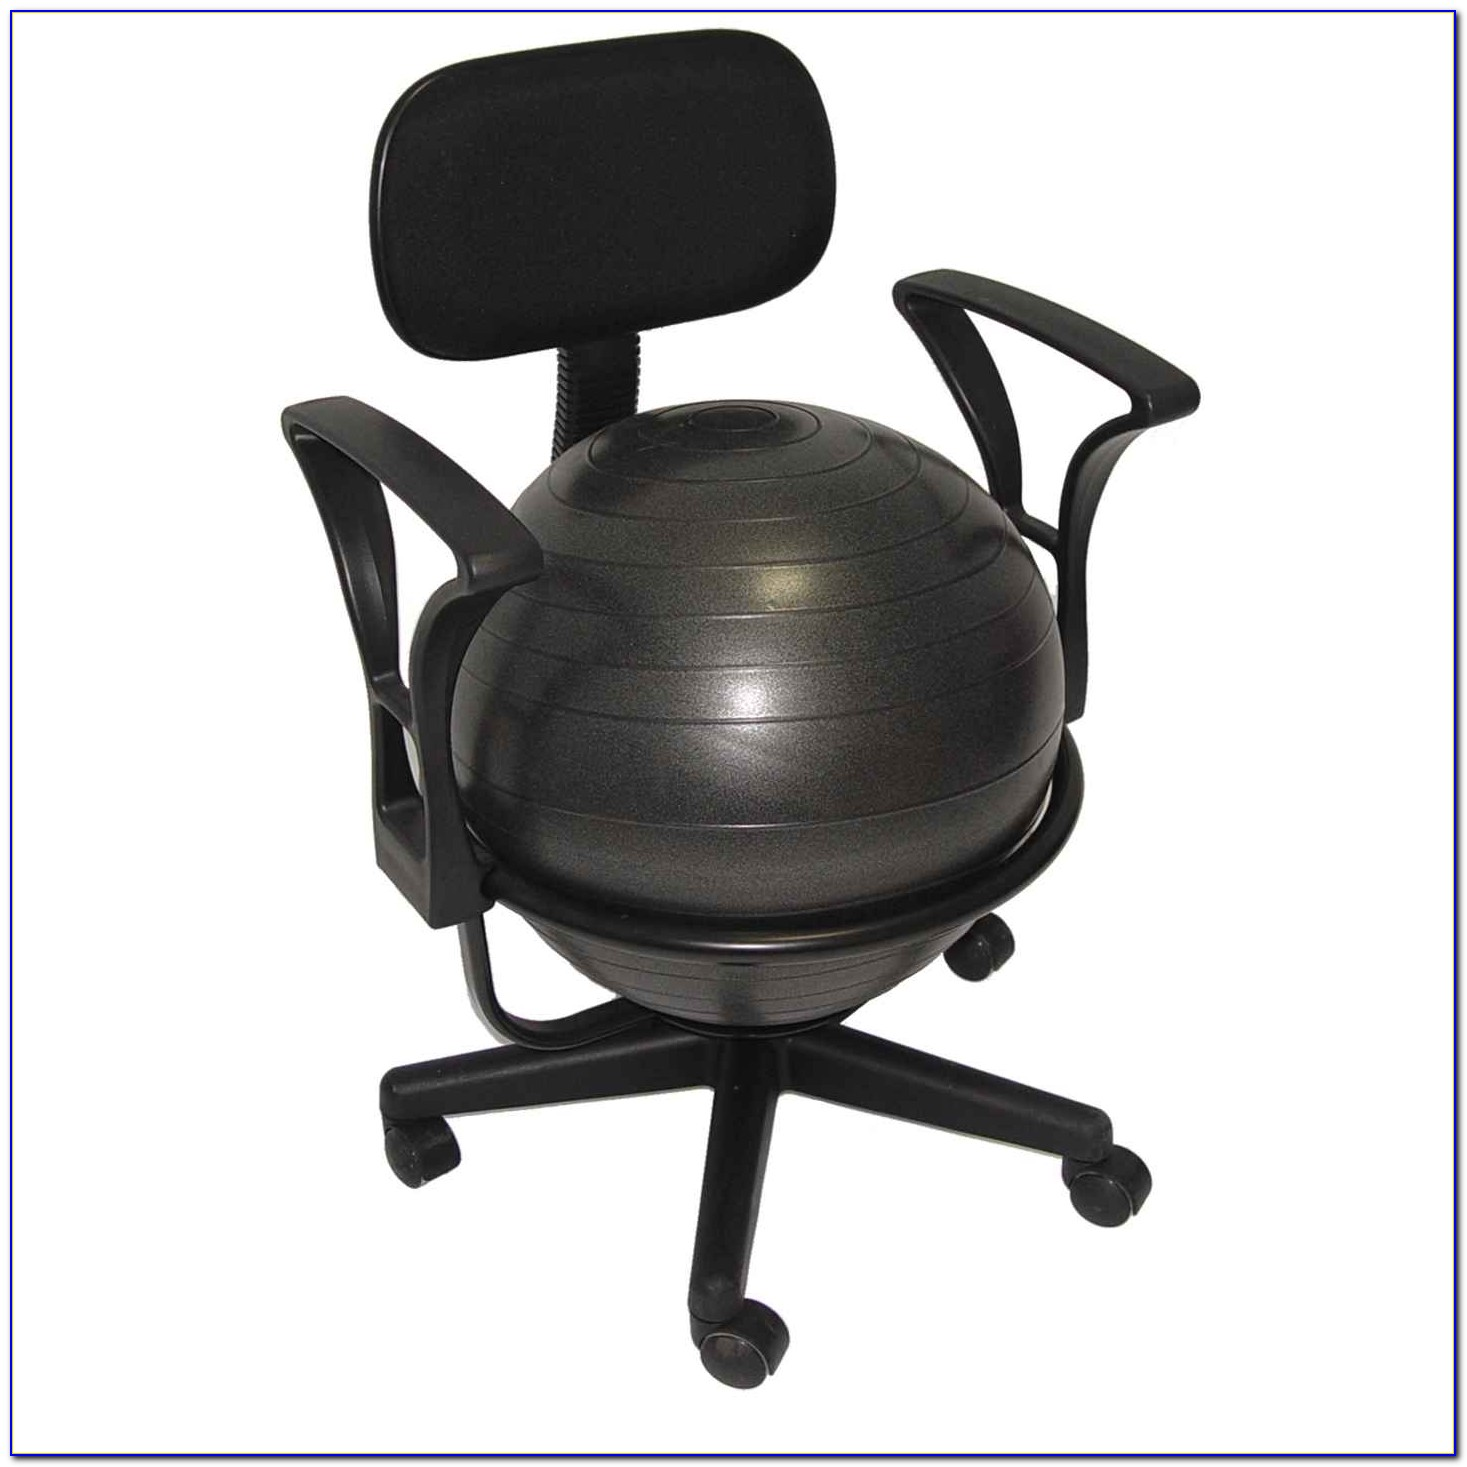 Ball Chair For Office Amazon